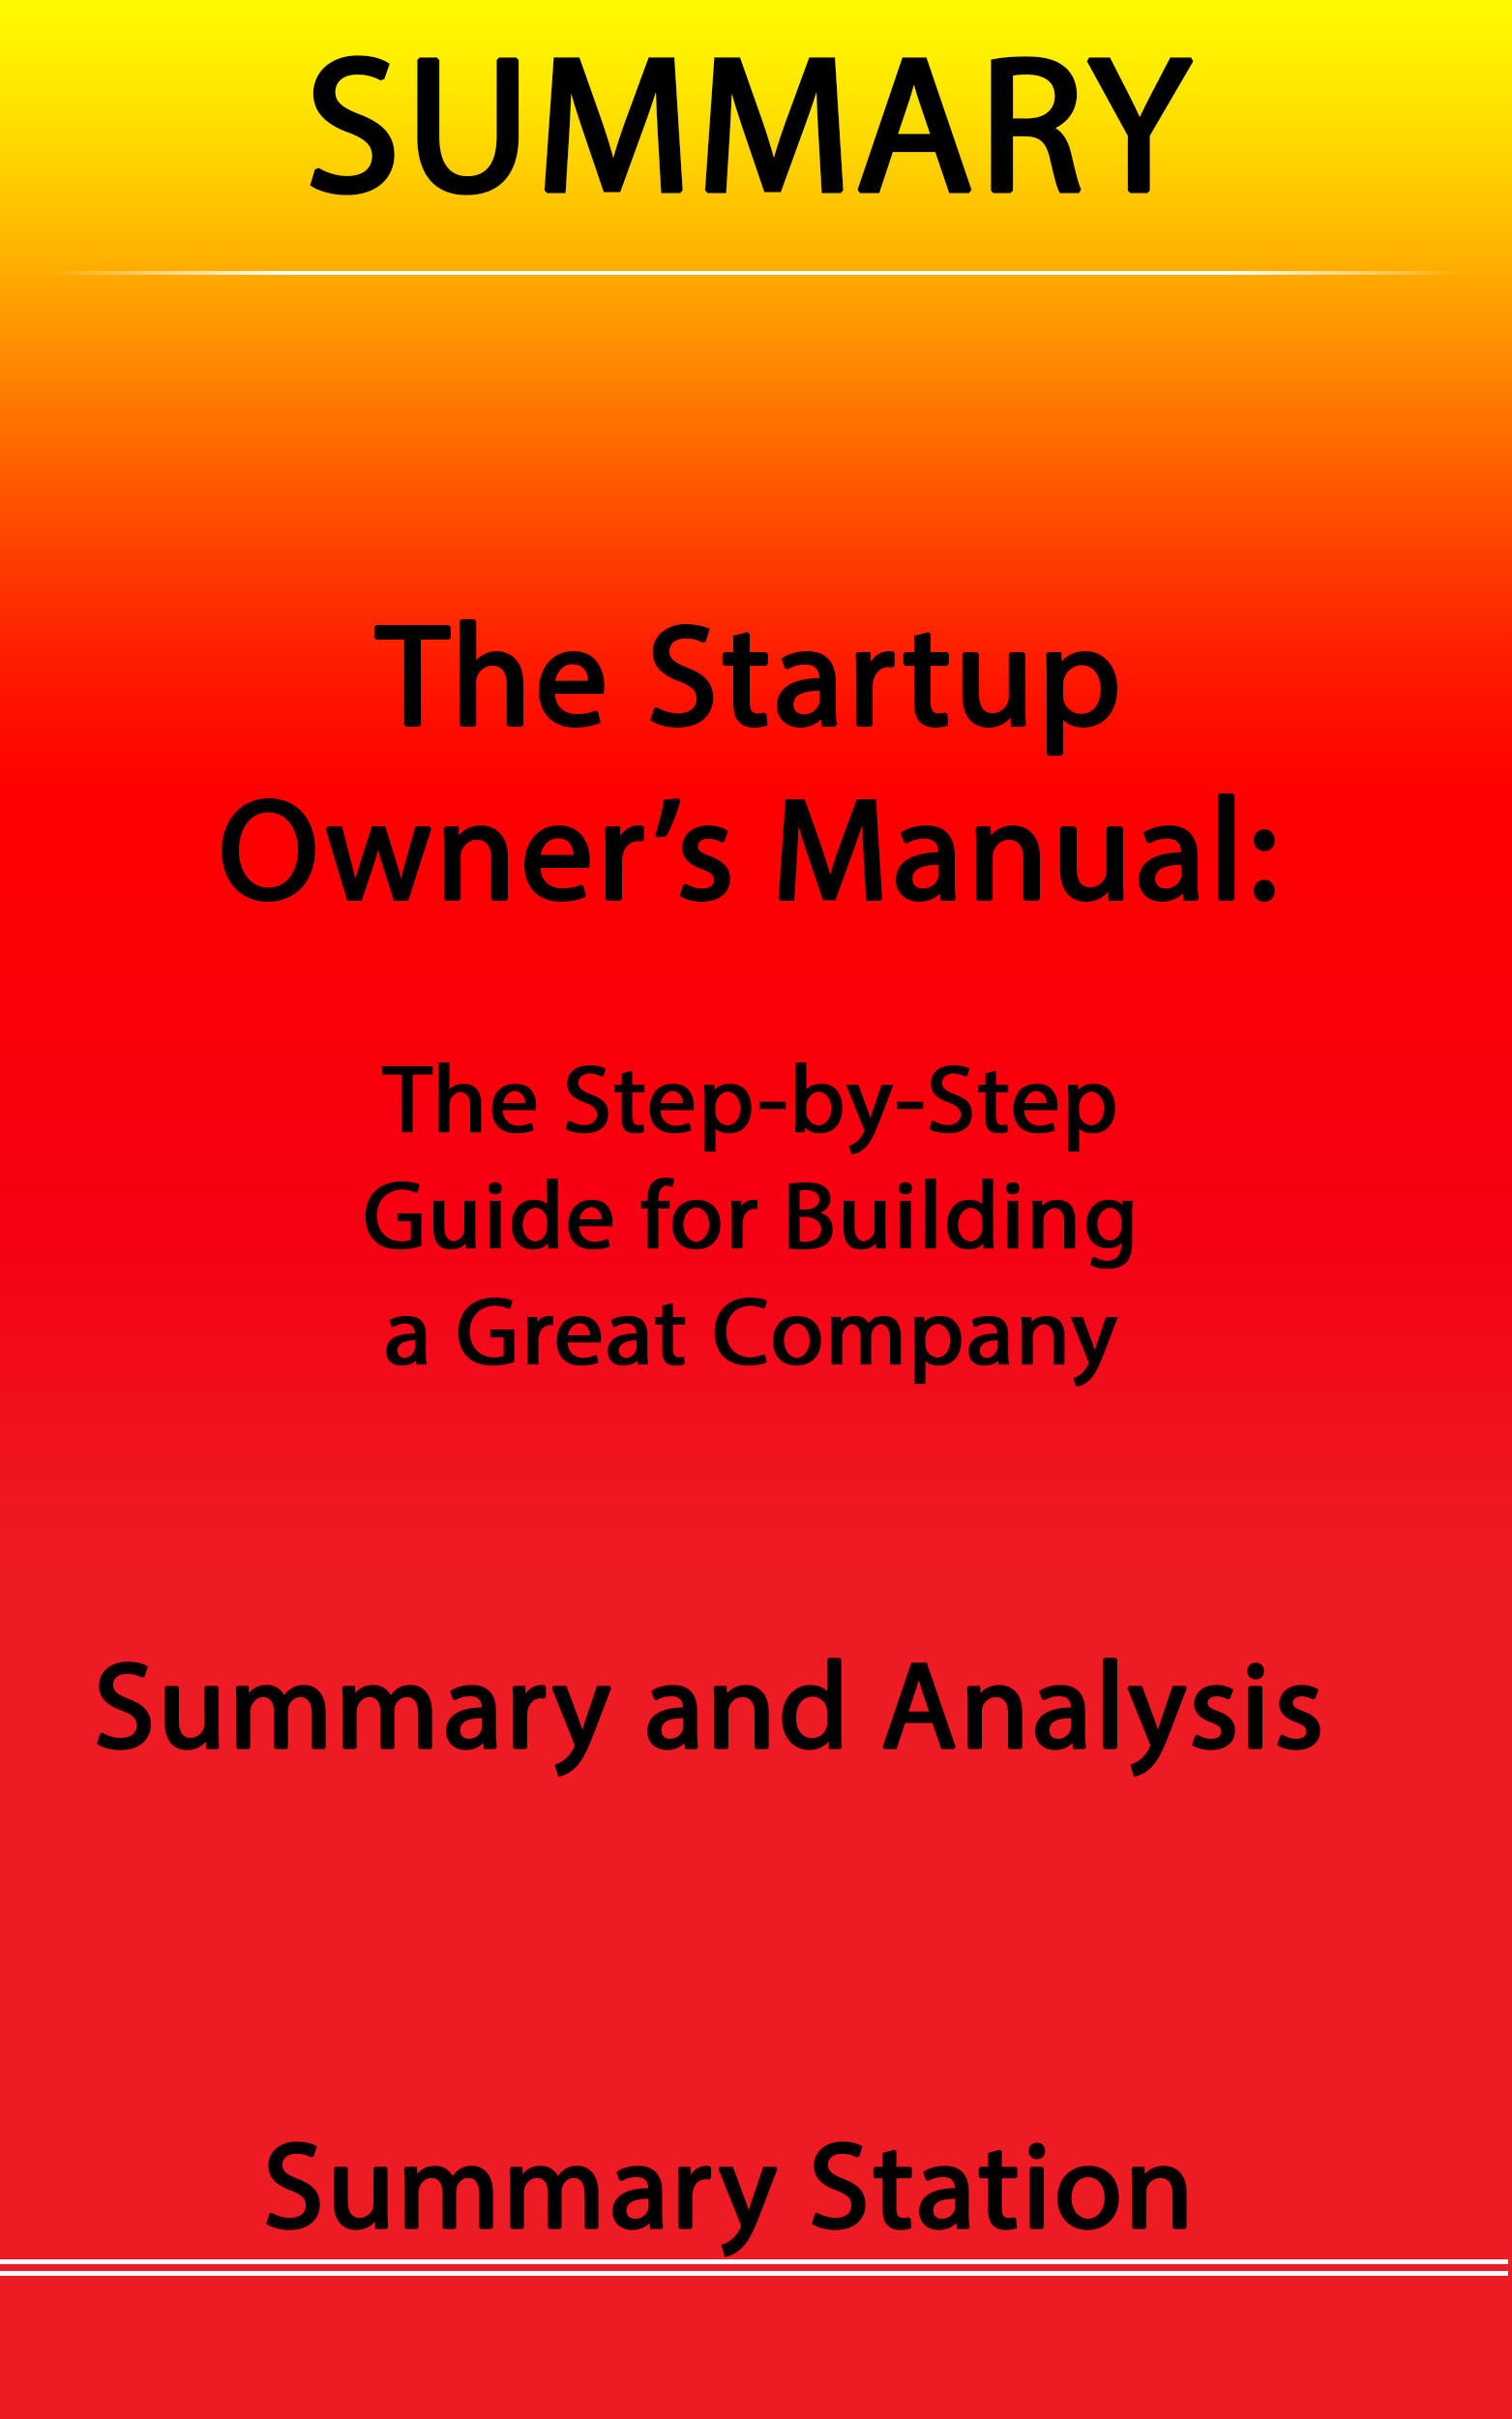 The Startup Owner's Manual: The Step-By-Step Guide for Building a Great Company | Summary